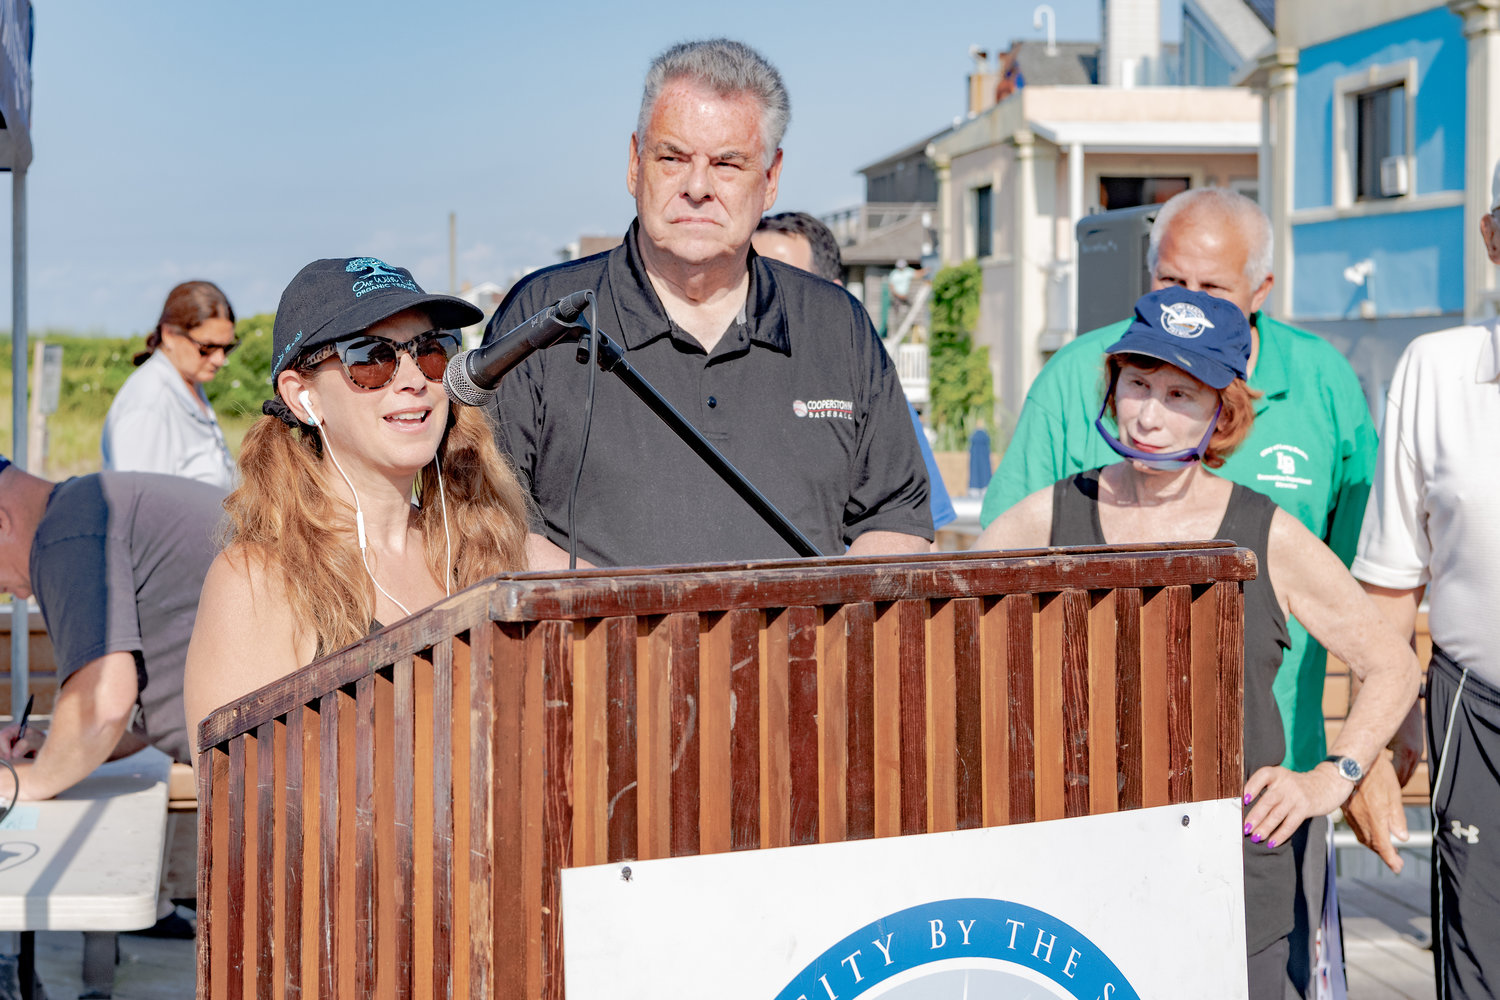 Larry Elovich's daughter Lisa, spoke at the annual Larry Elovich 5K Memorial Fun Run and Walk, alongside US Congressman Peter King and her mother Helen Elovich.